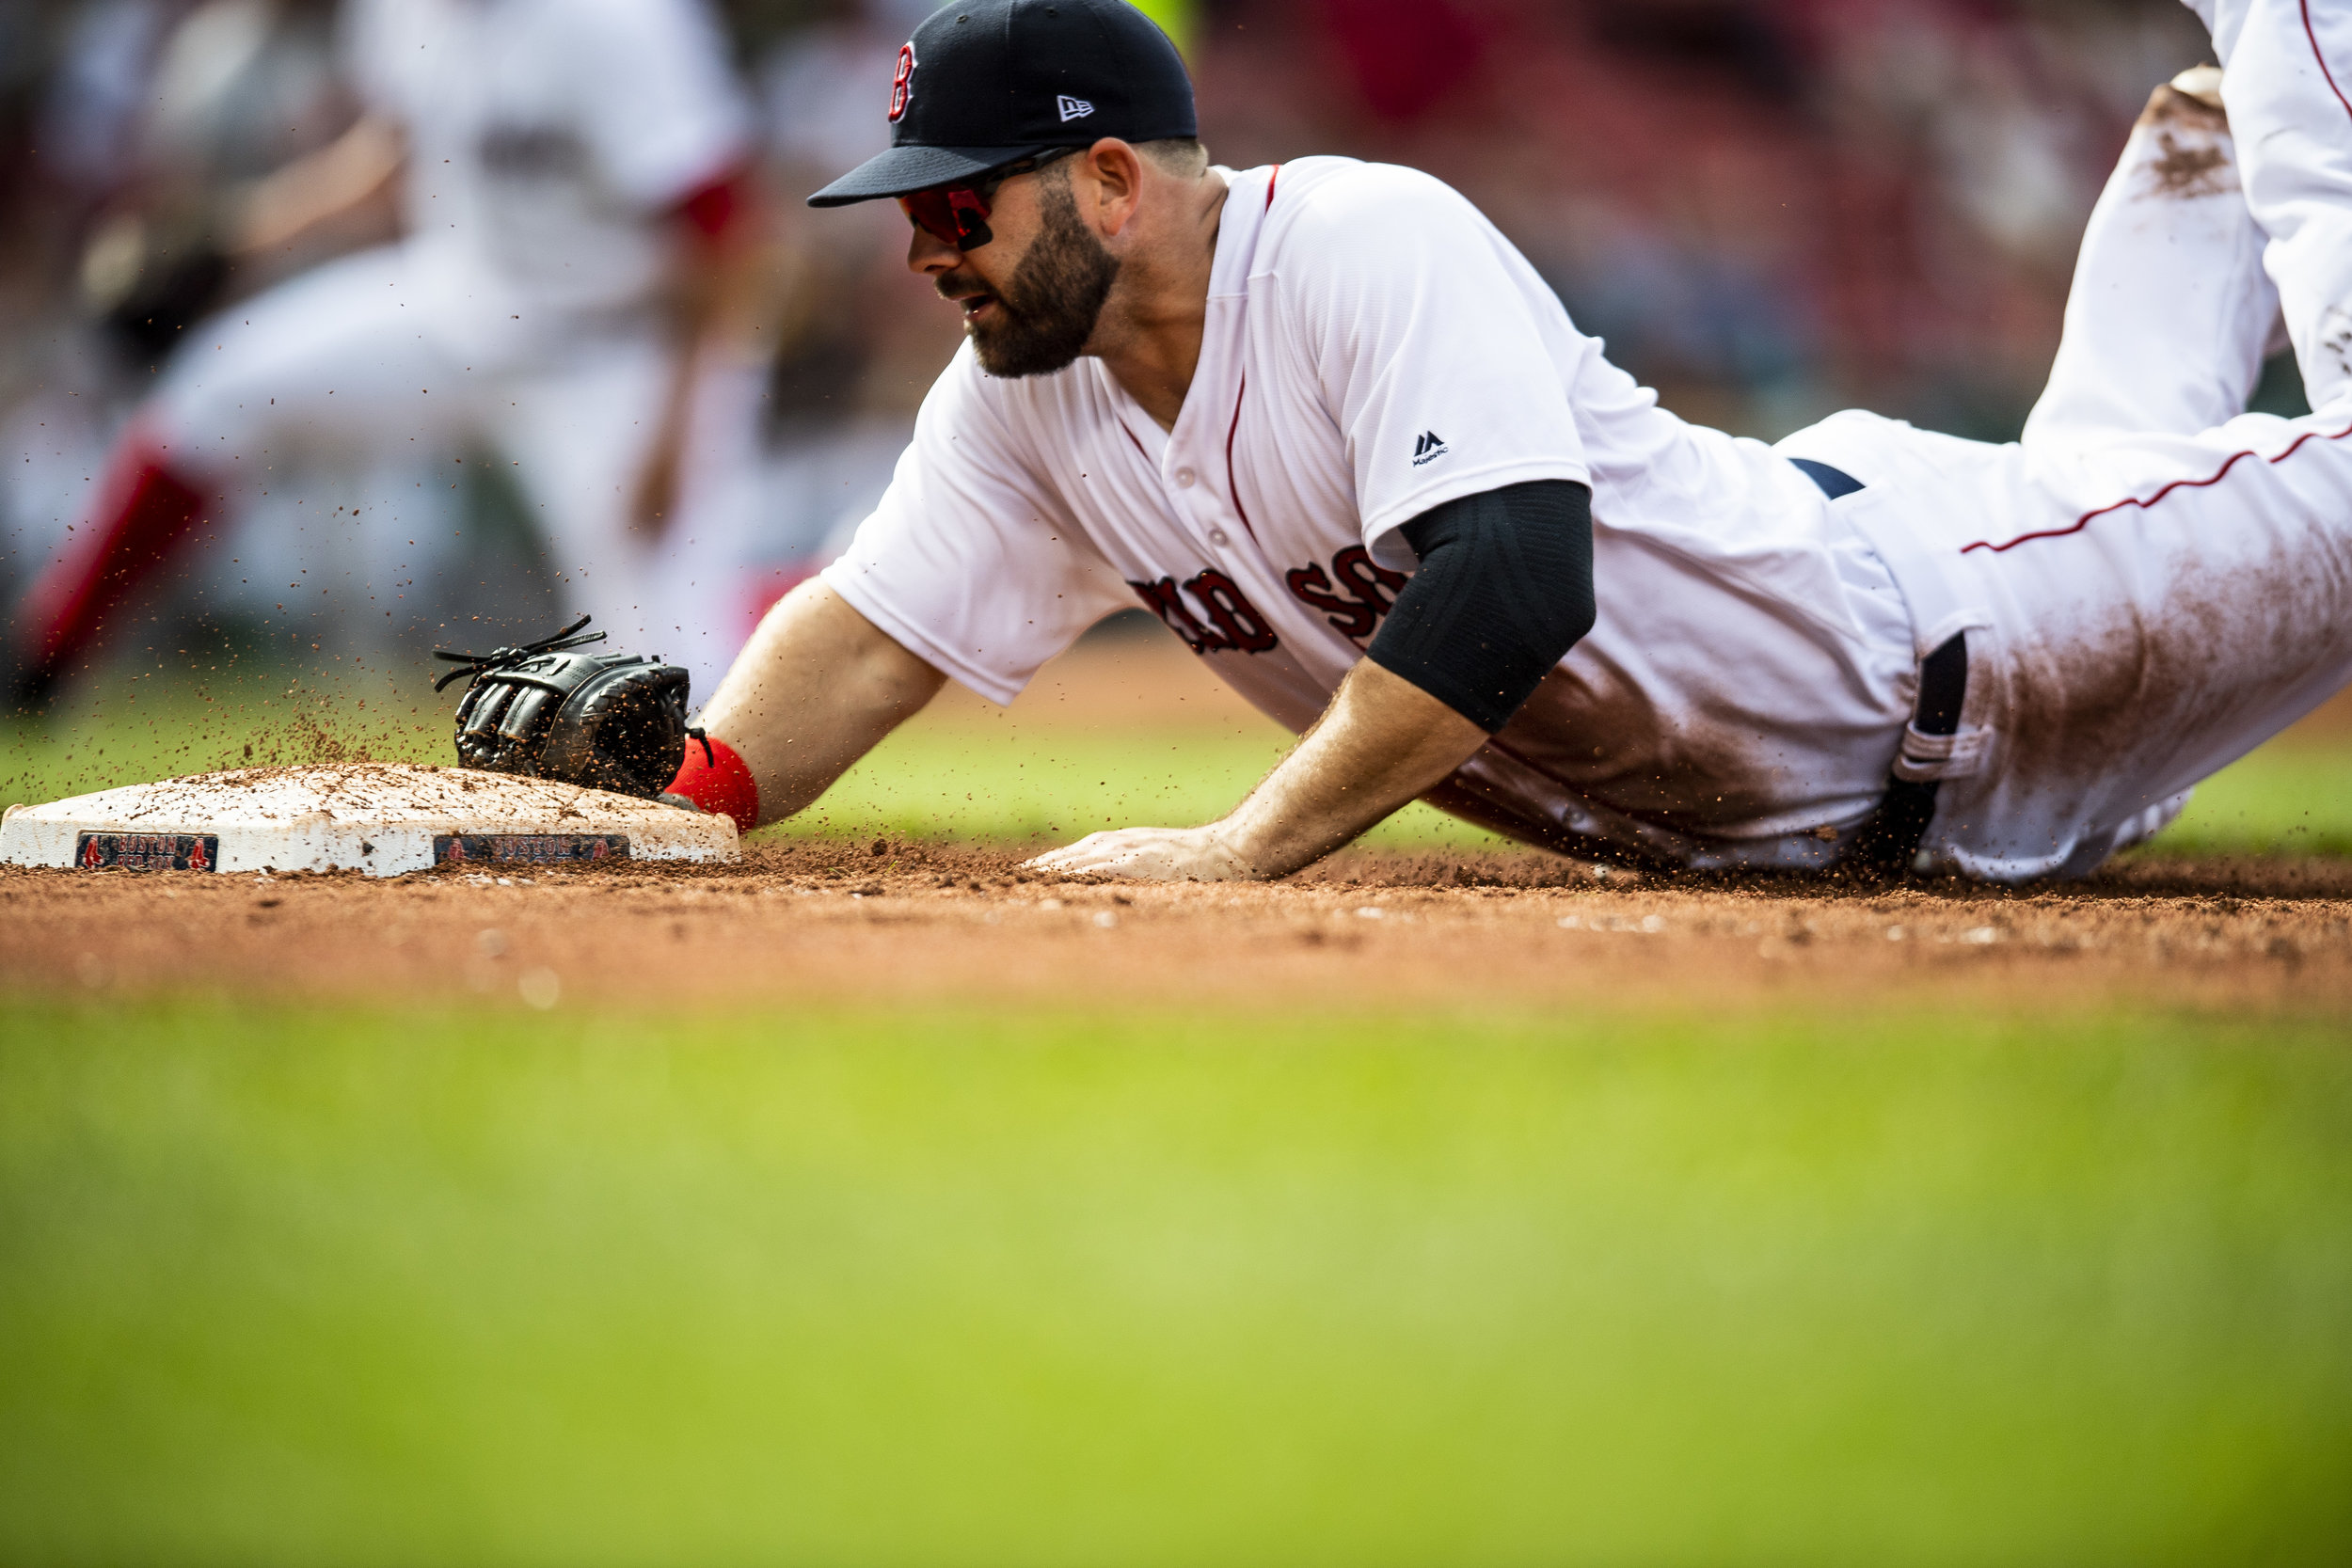 May 20, 2018, Boston, MA: Boston Red Sox first basemen Mitch Moreland dives and tags first base for an out as the Boston Red Sox face the Baltimore Orioles at Fenway Park in Boston, Massachusetts on Saturday, May 20, 2018. (Photo by Matthew Thomas/Boston Red Sox)